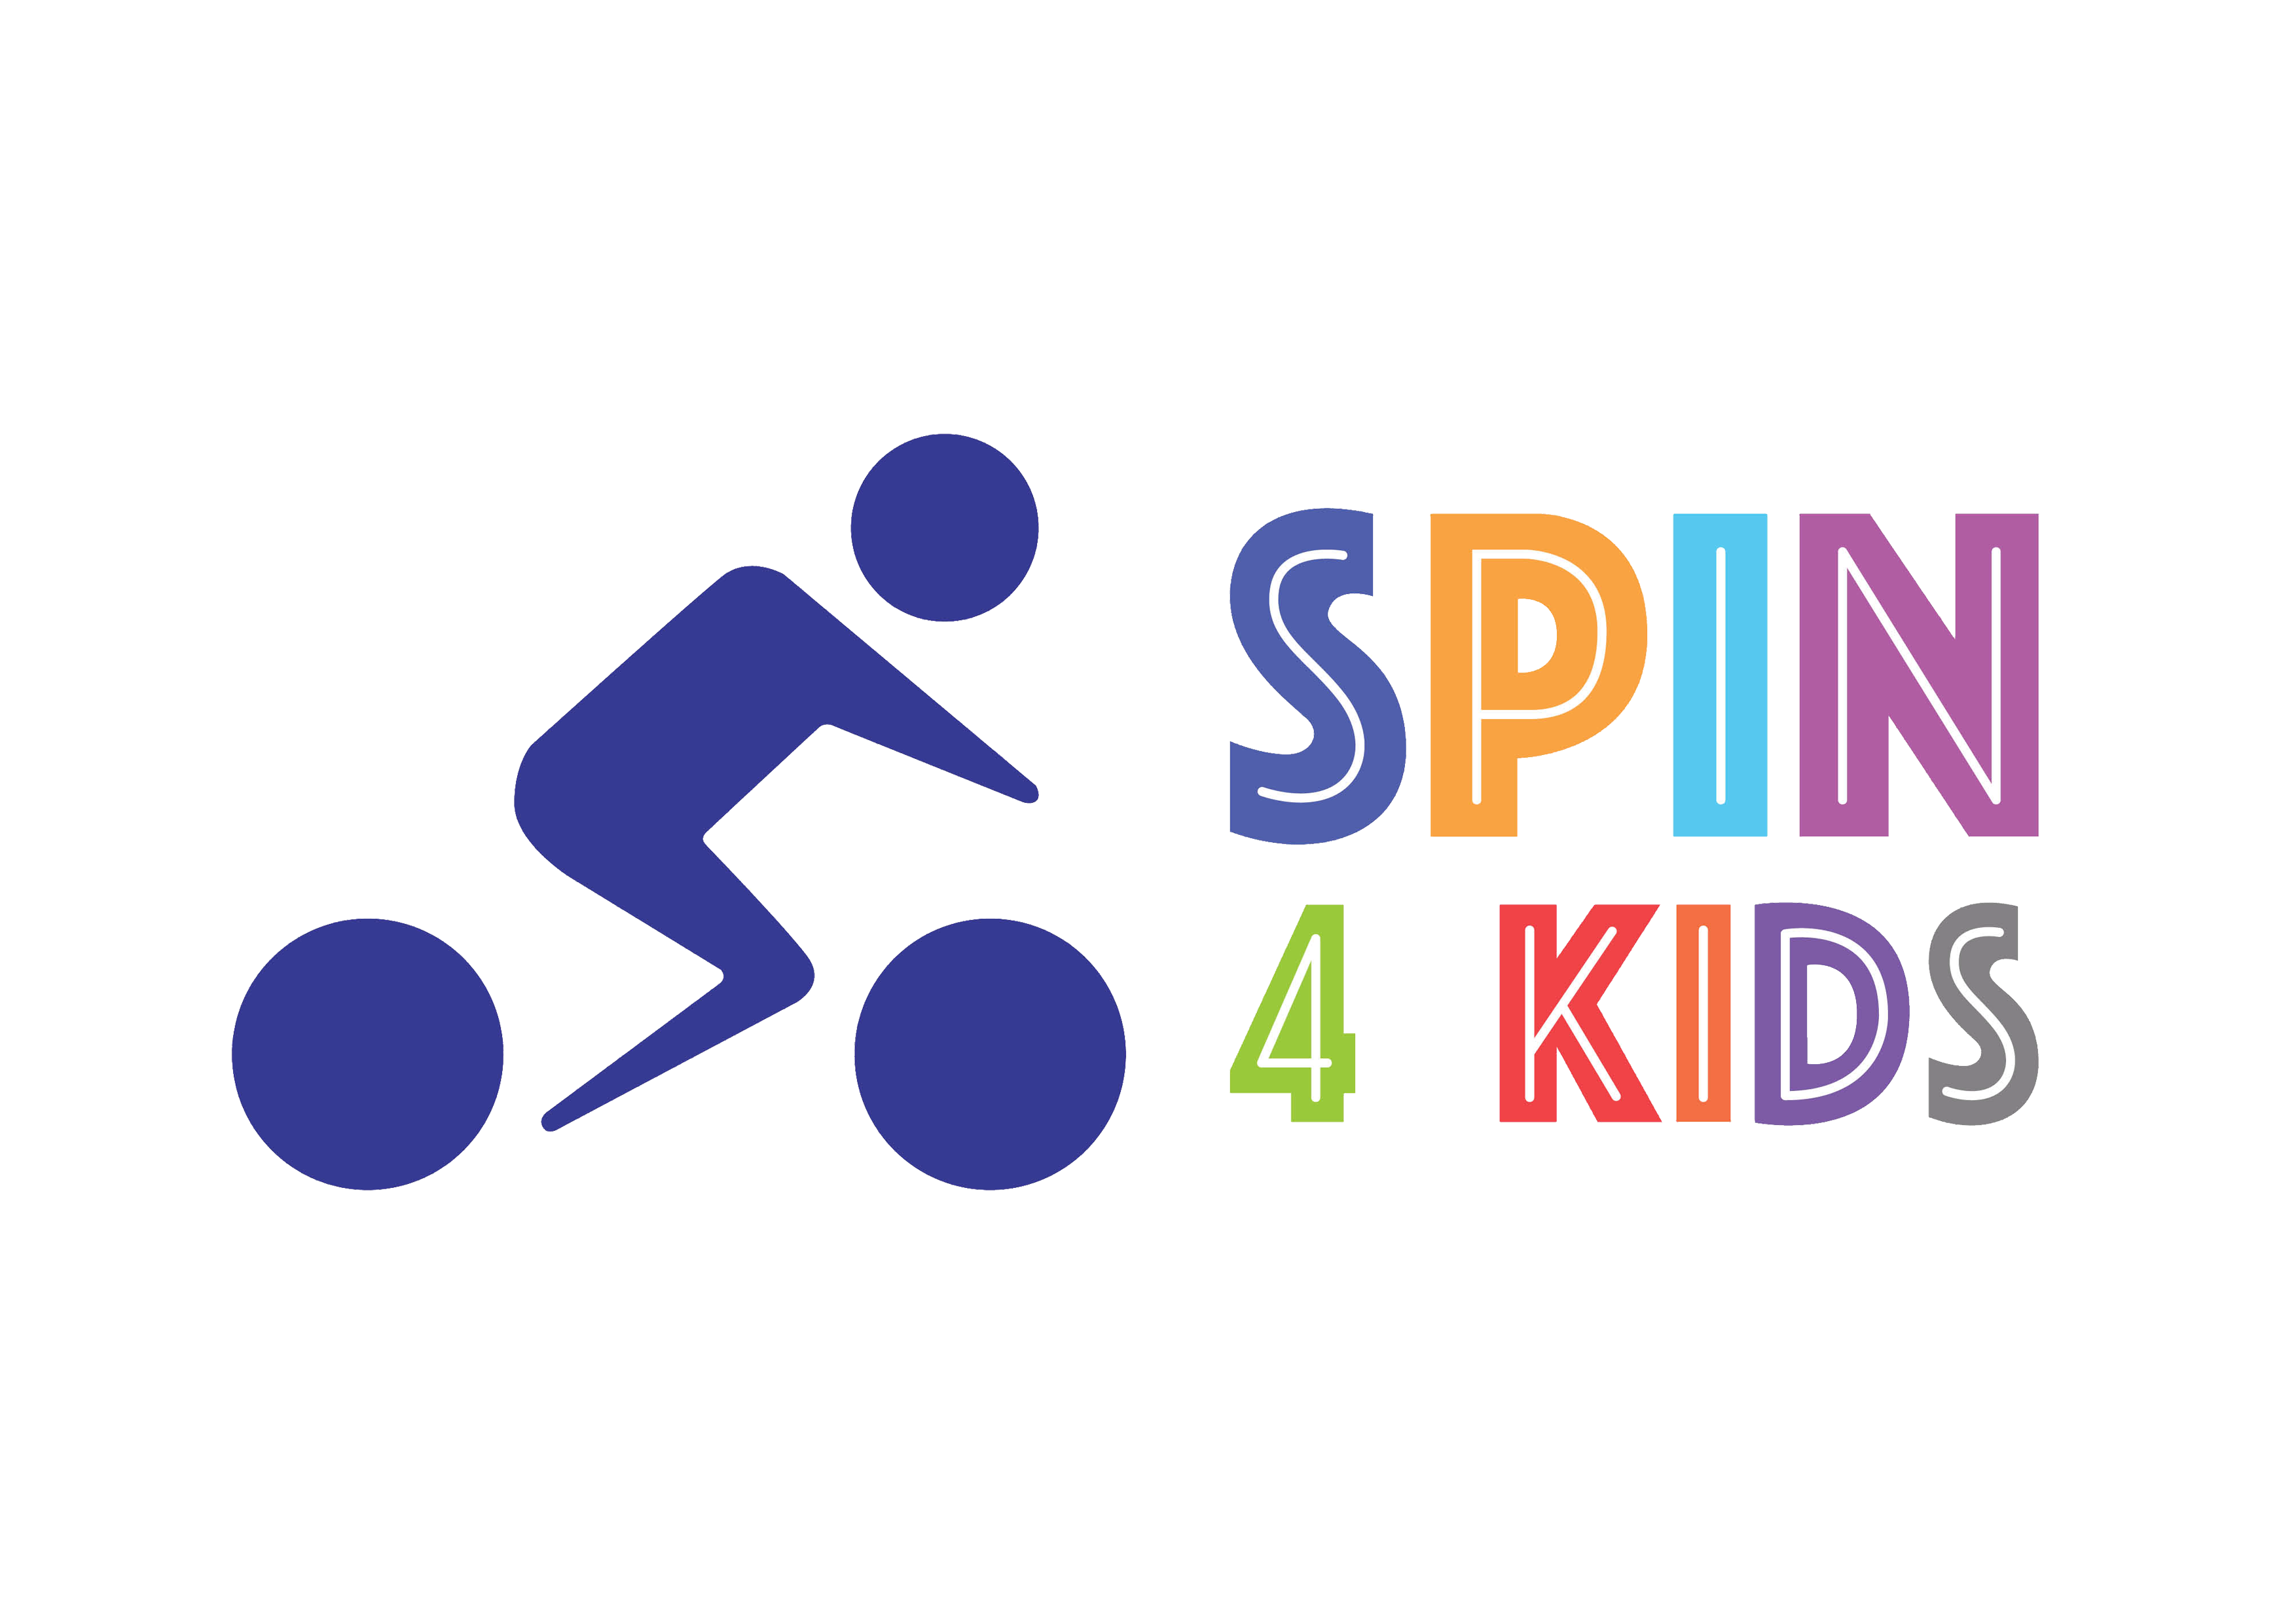 Spin for kids donation